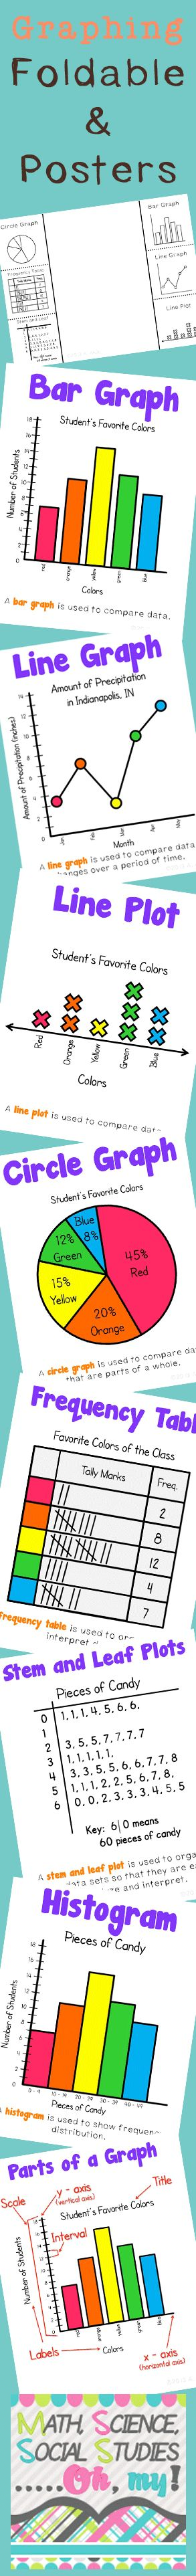 17 Best images about 5th Grade: Data on Pinterest  Constructed  education, math worksheets, free worksheets, grade worksheets, alphabet worksheets, and multiplication Creating Circle Graphs Worksheets 2 3851 x 293